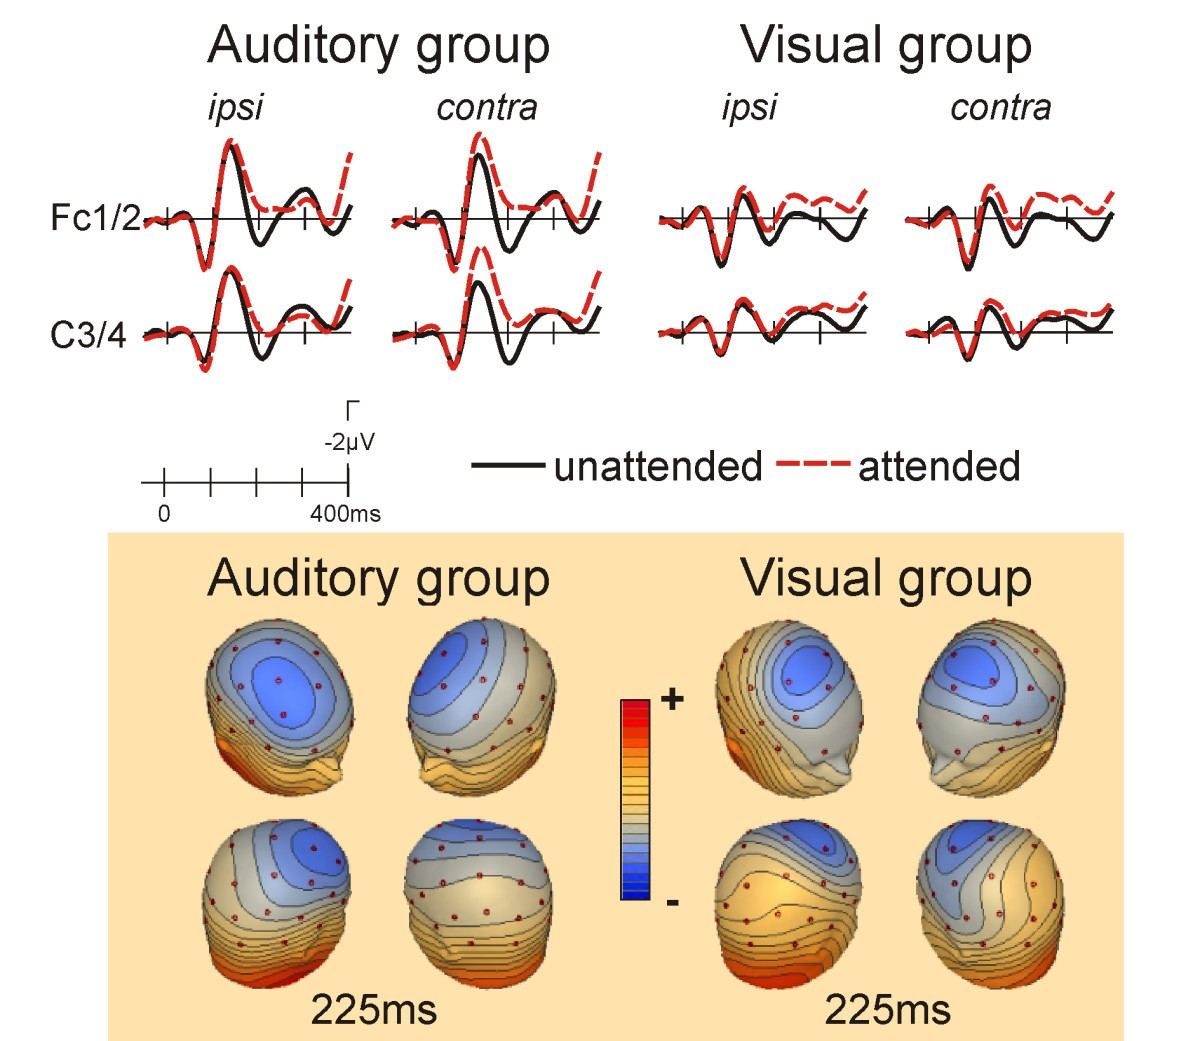 Crossmodal Attention Effects On Brain Responses To Different Bio Ball Isi 50 Figure 4